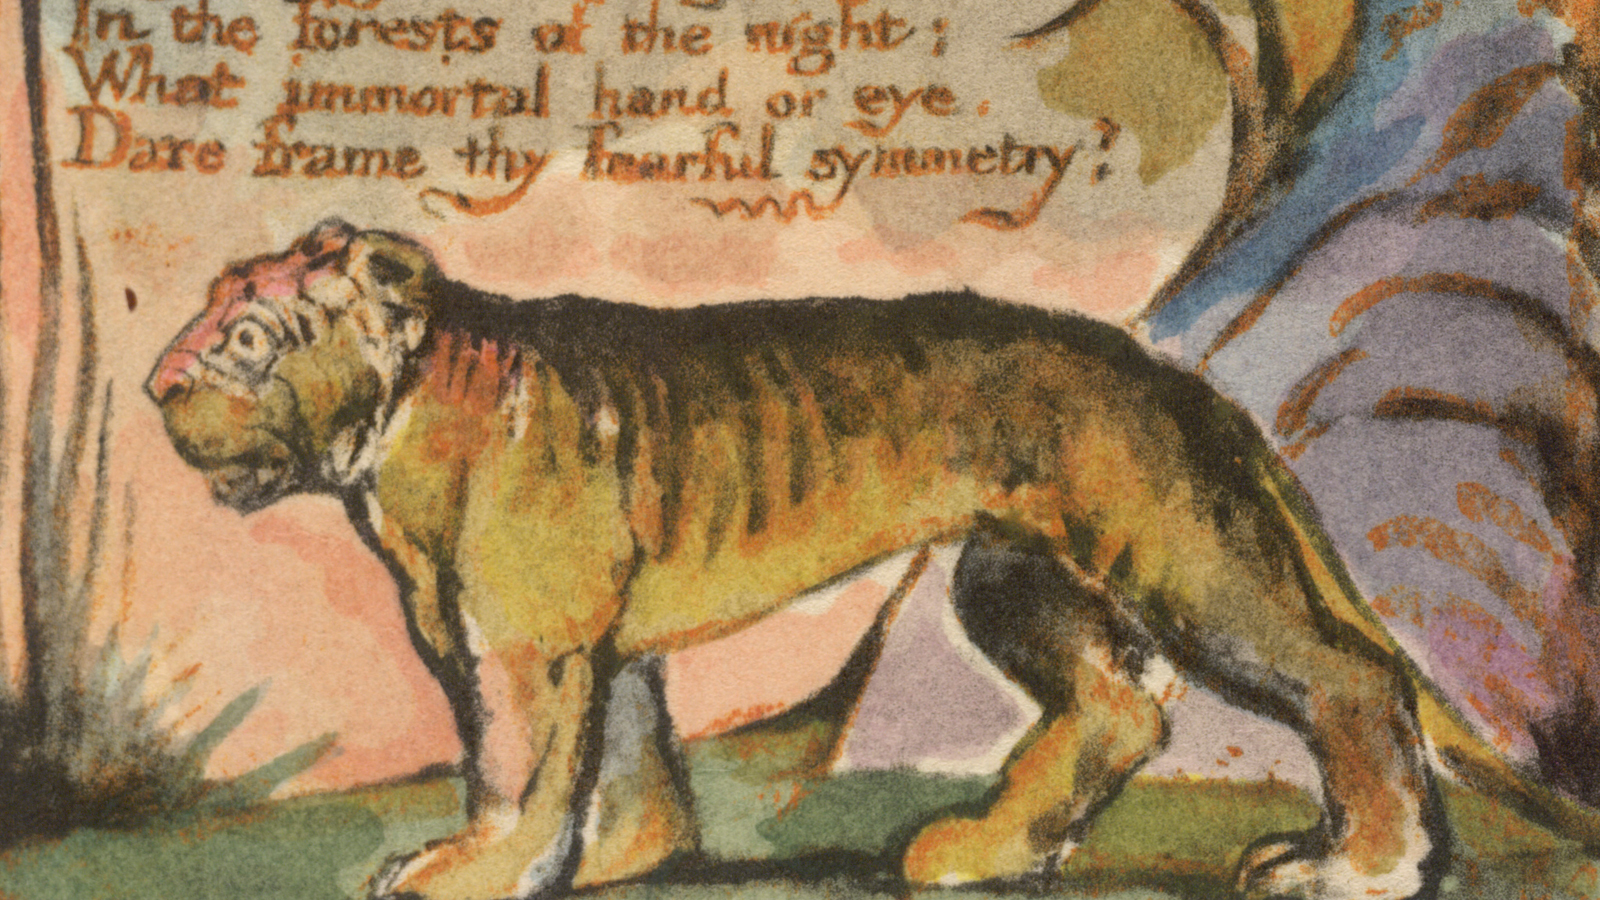 An introduction to 'The Tyger'